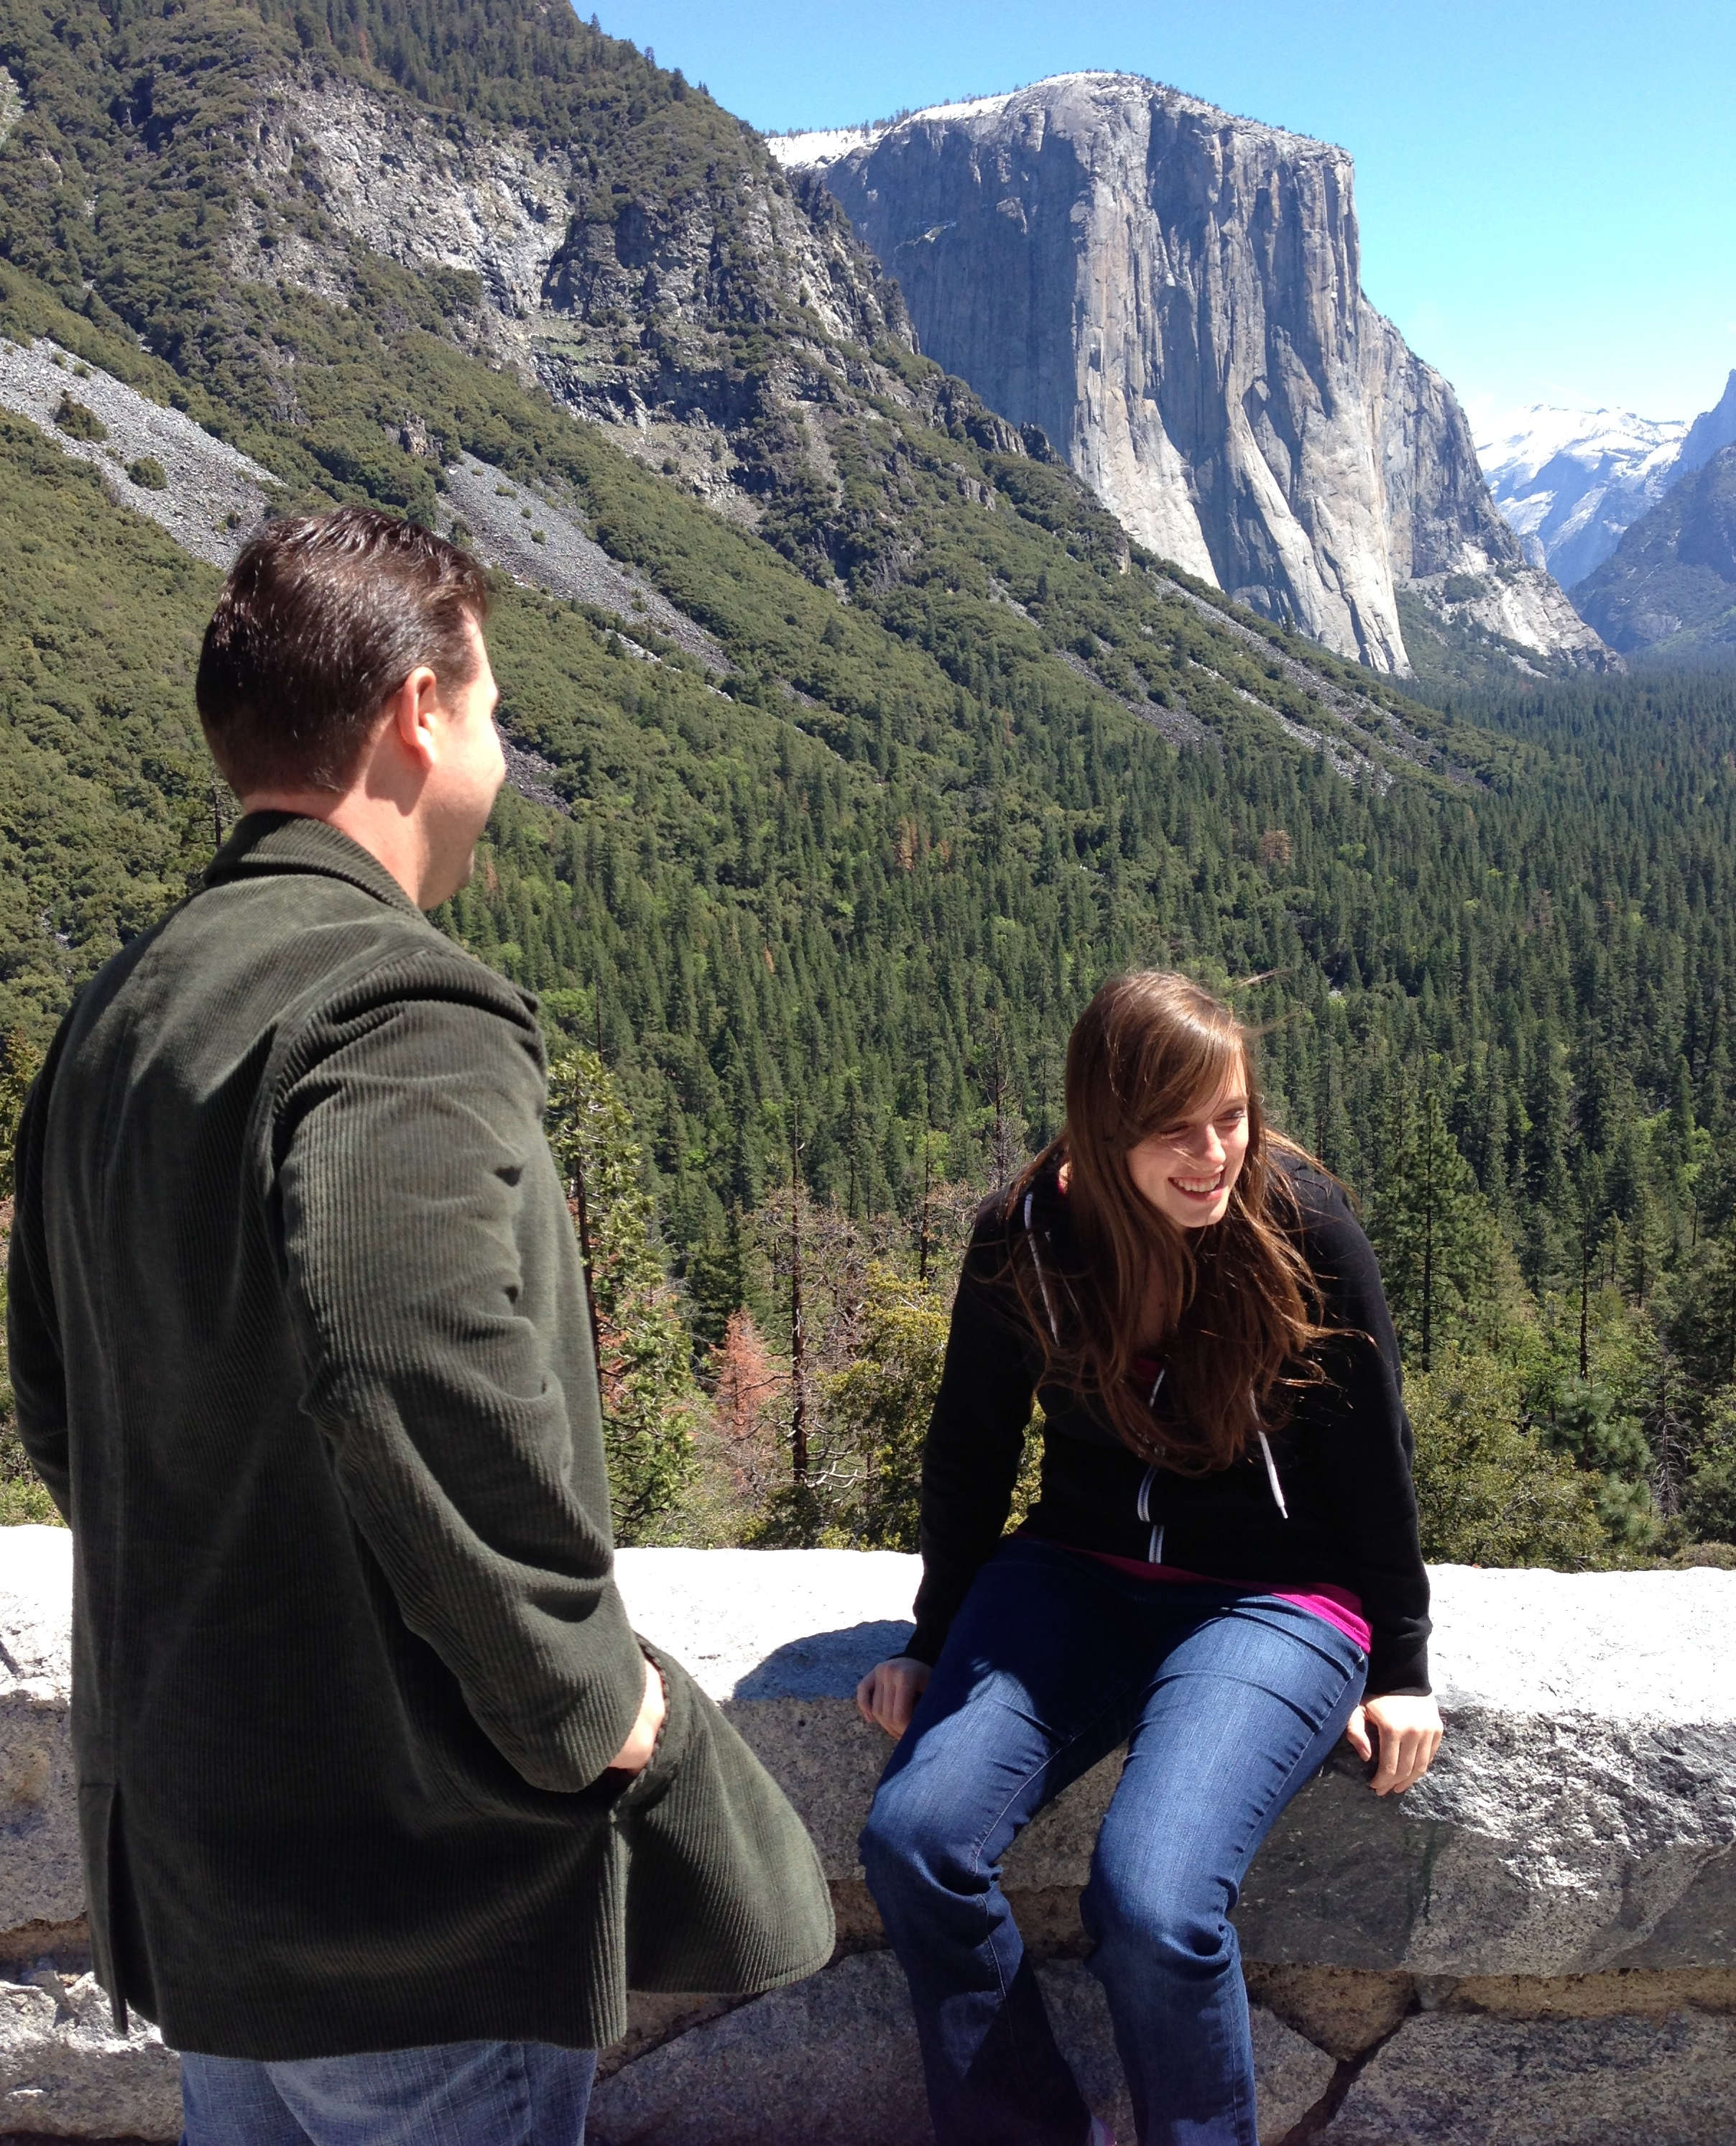 Image 2 of Danielle and Kyle | Yosemite National Park Proposal